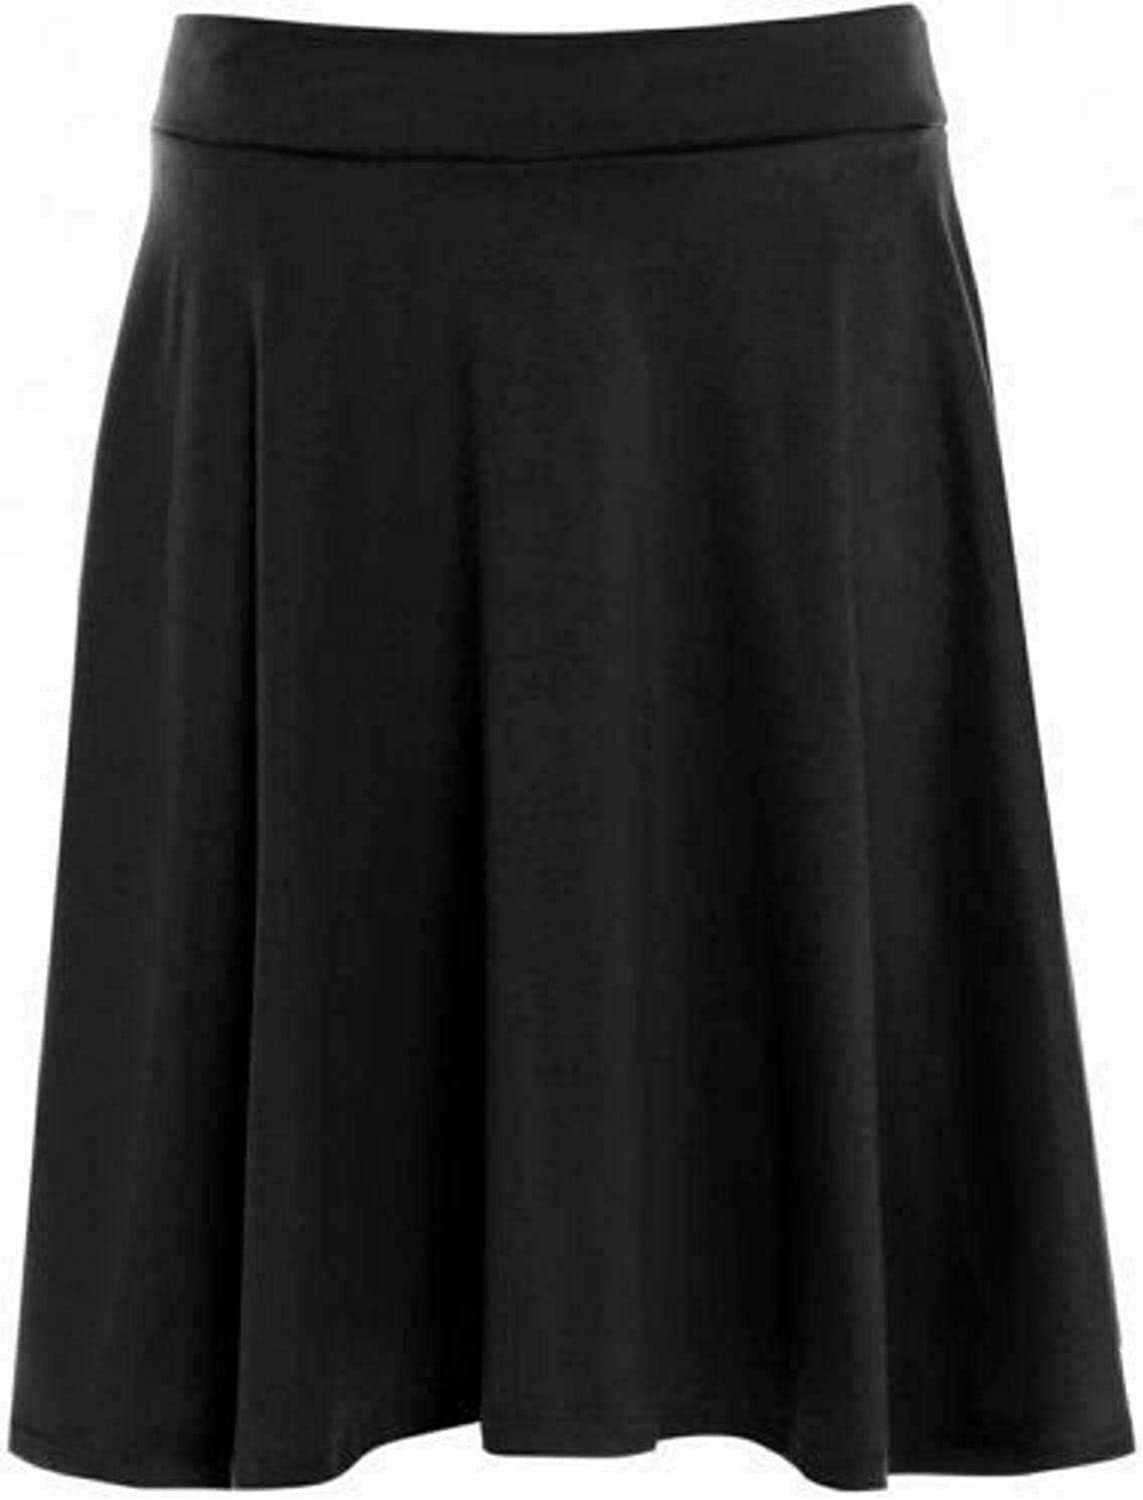 Style Wise Fashion Womens Plain and Tartan Print Swing Skater Skirt Ladies Flared Party Midi Skirt